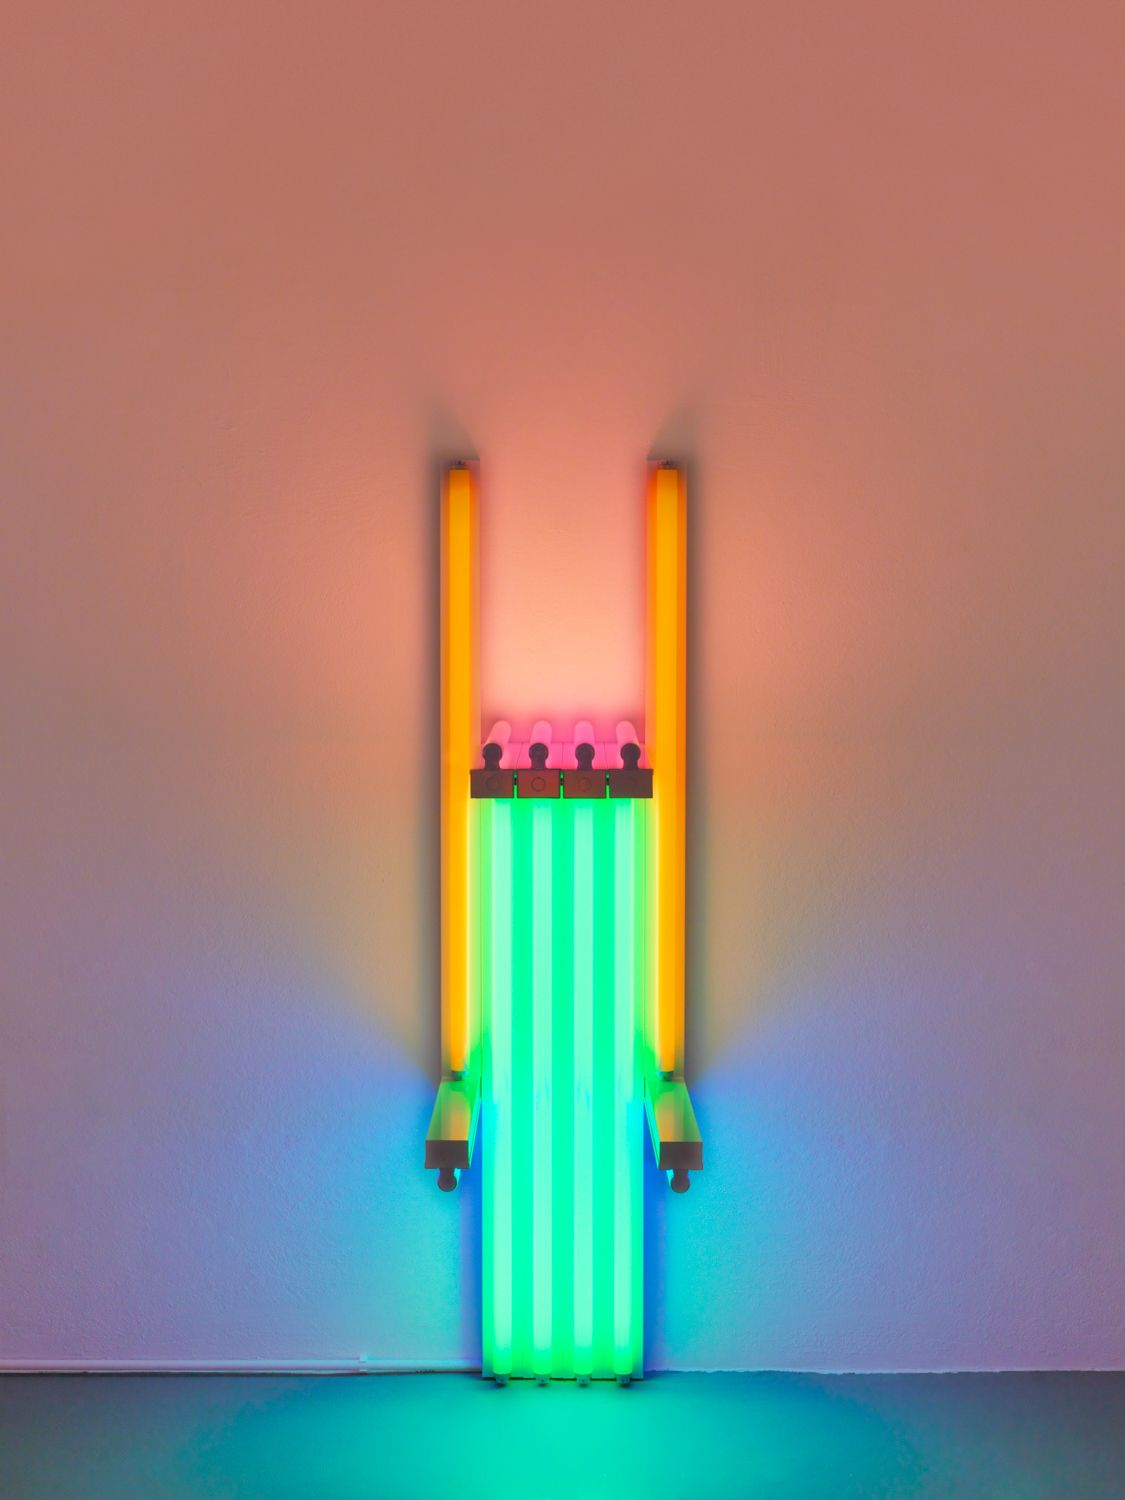 Dan Flavin untitled (to Lucie Rie, master potter) 1y, 1990